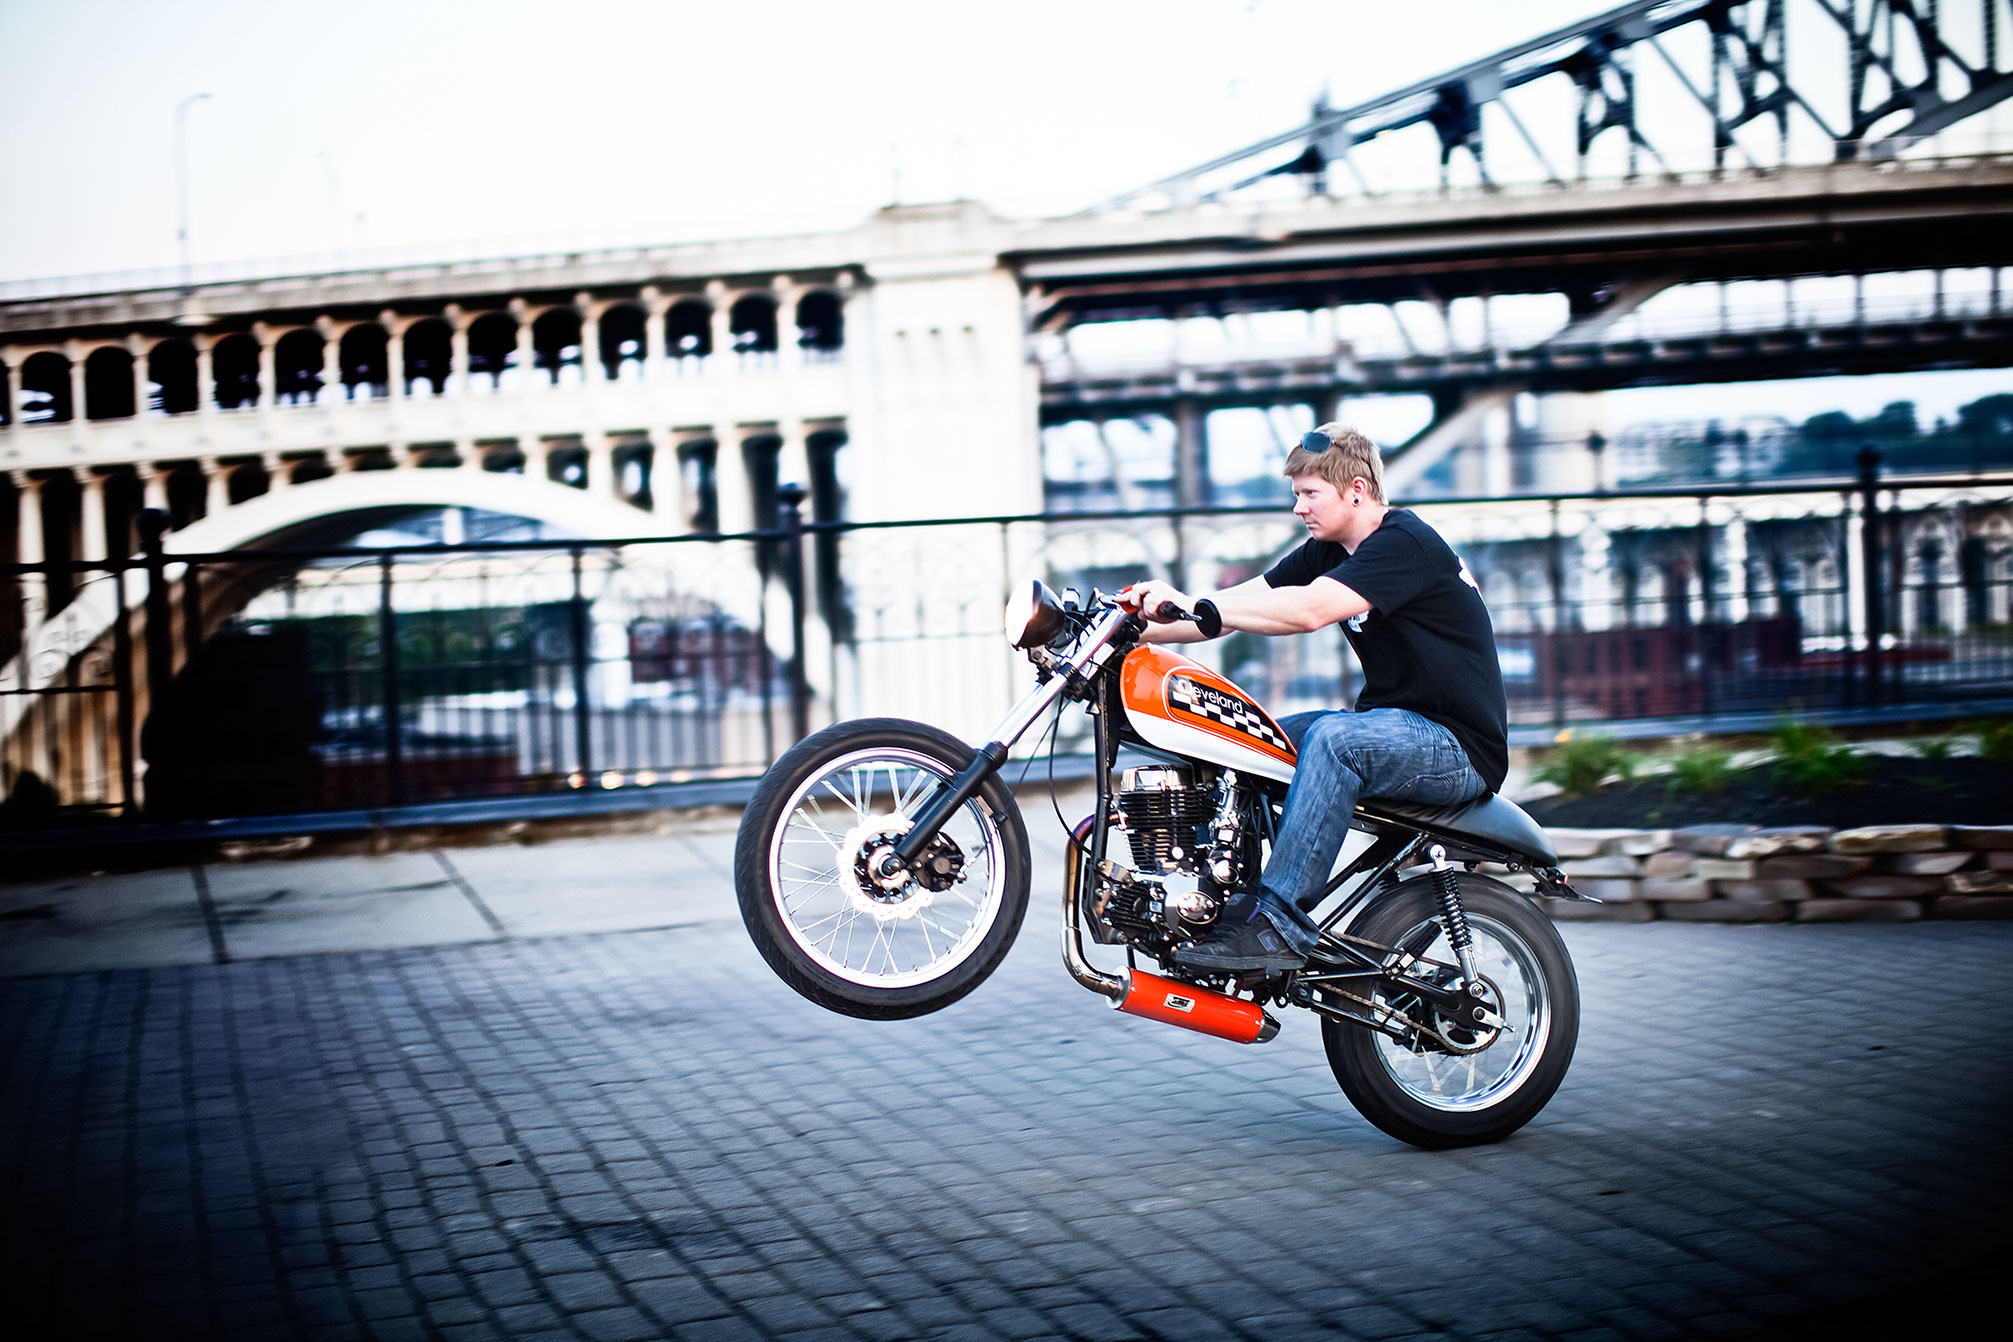 2013 Cleveland CycleWerks Ace Standard Review